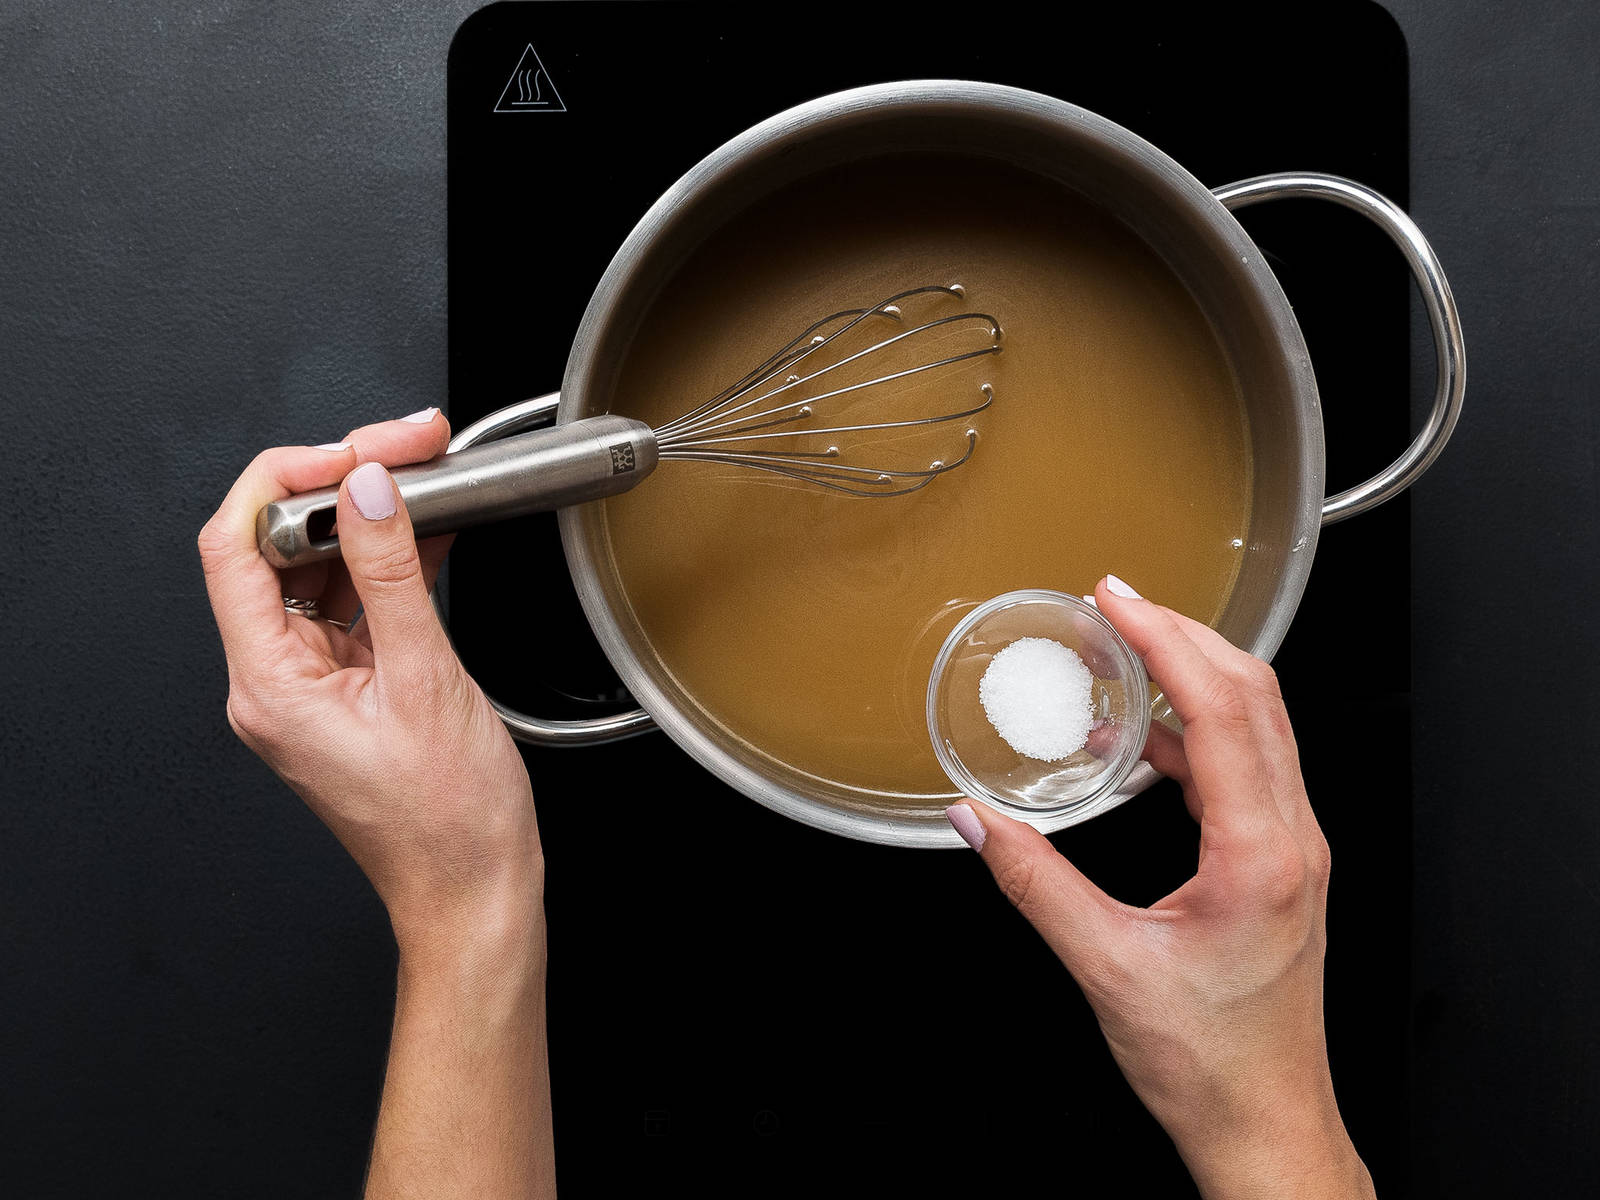 Add sugar, cane sugar, honey, and bourbon to a pot, bring to a boil and simmer for approx. 5 – 7 min. until the syrup thickens and browns. Remove the pot from heat.